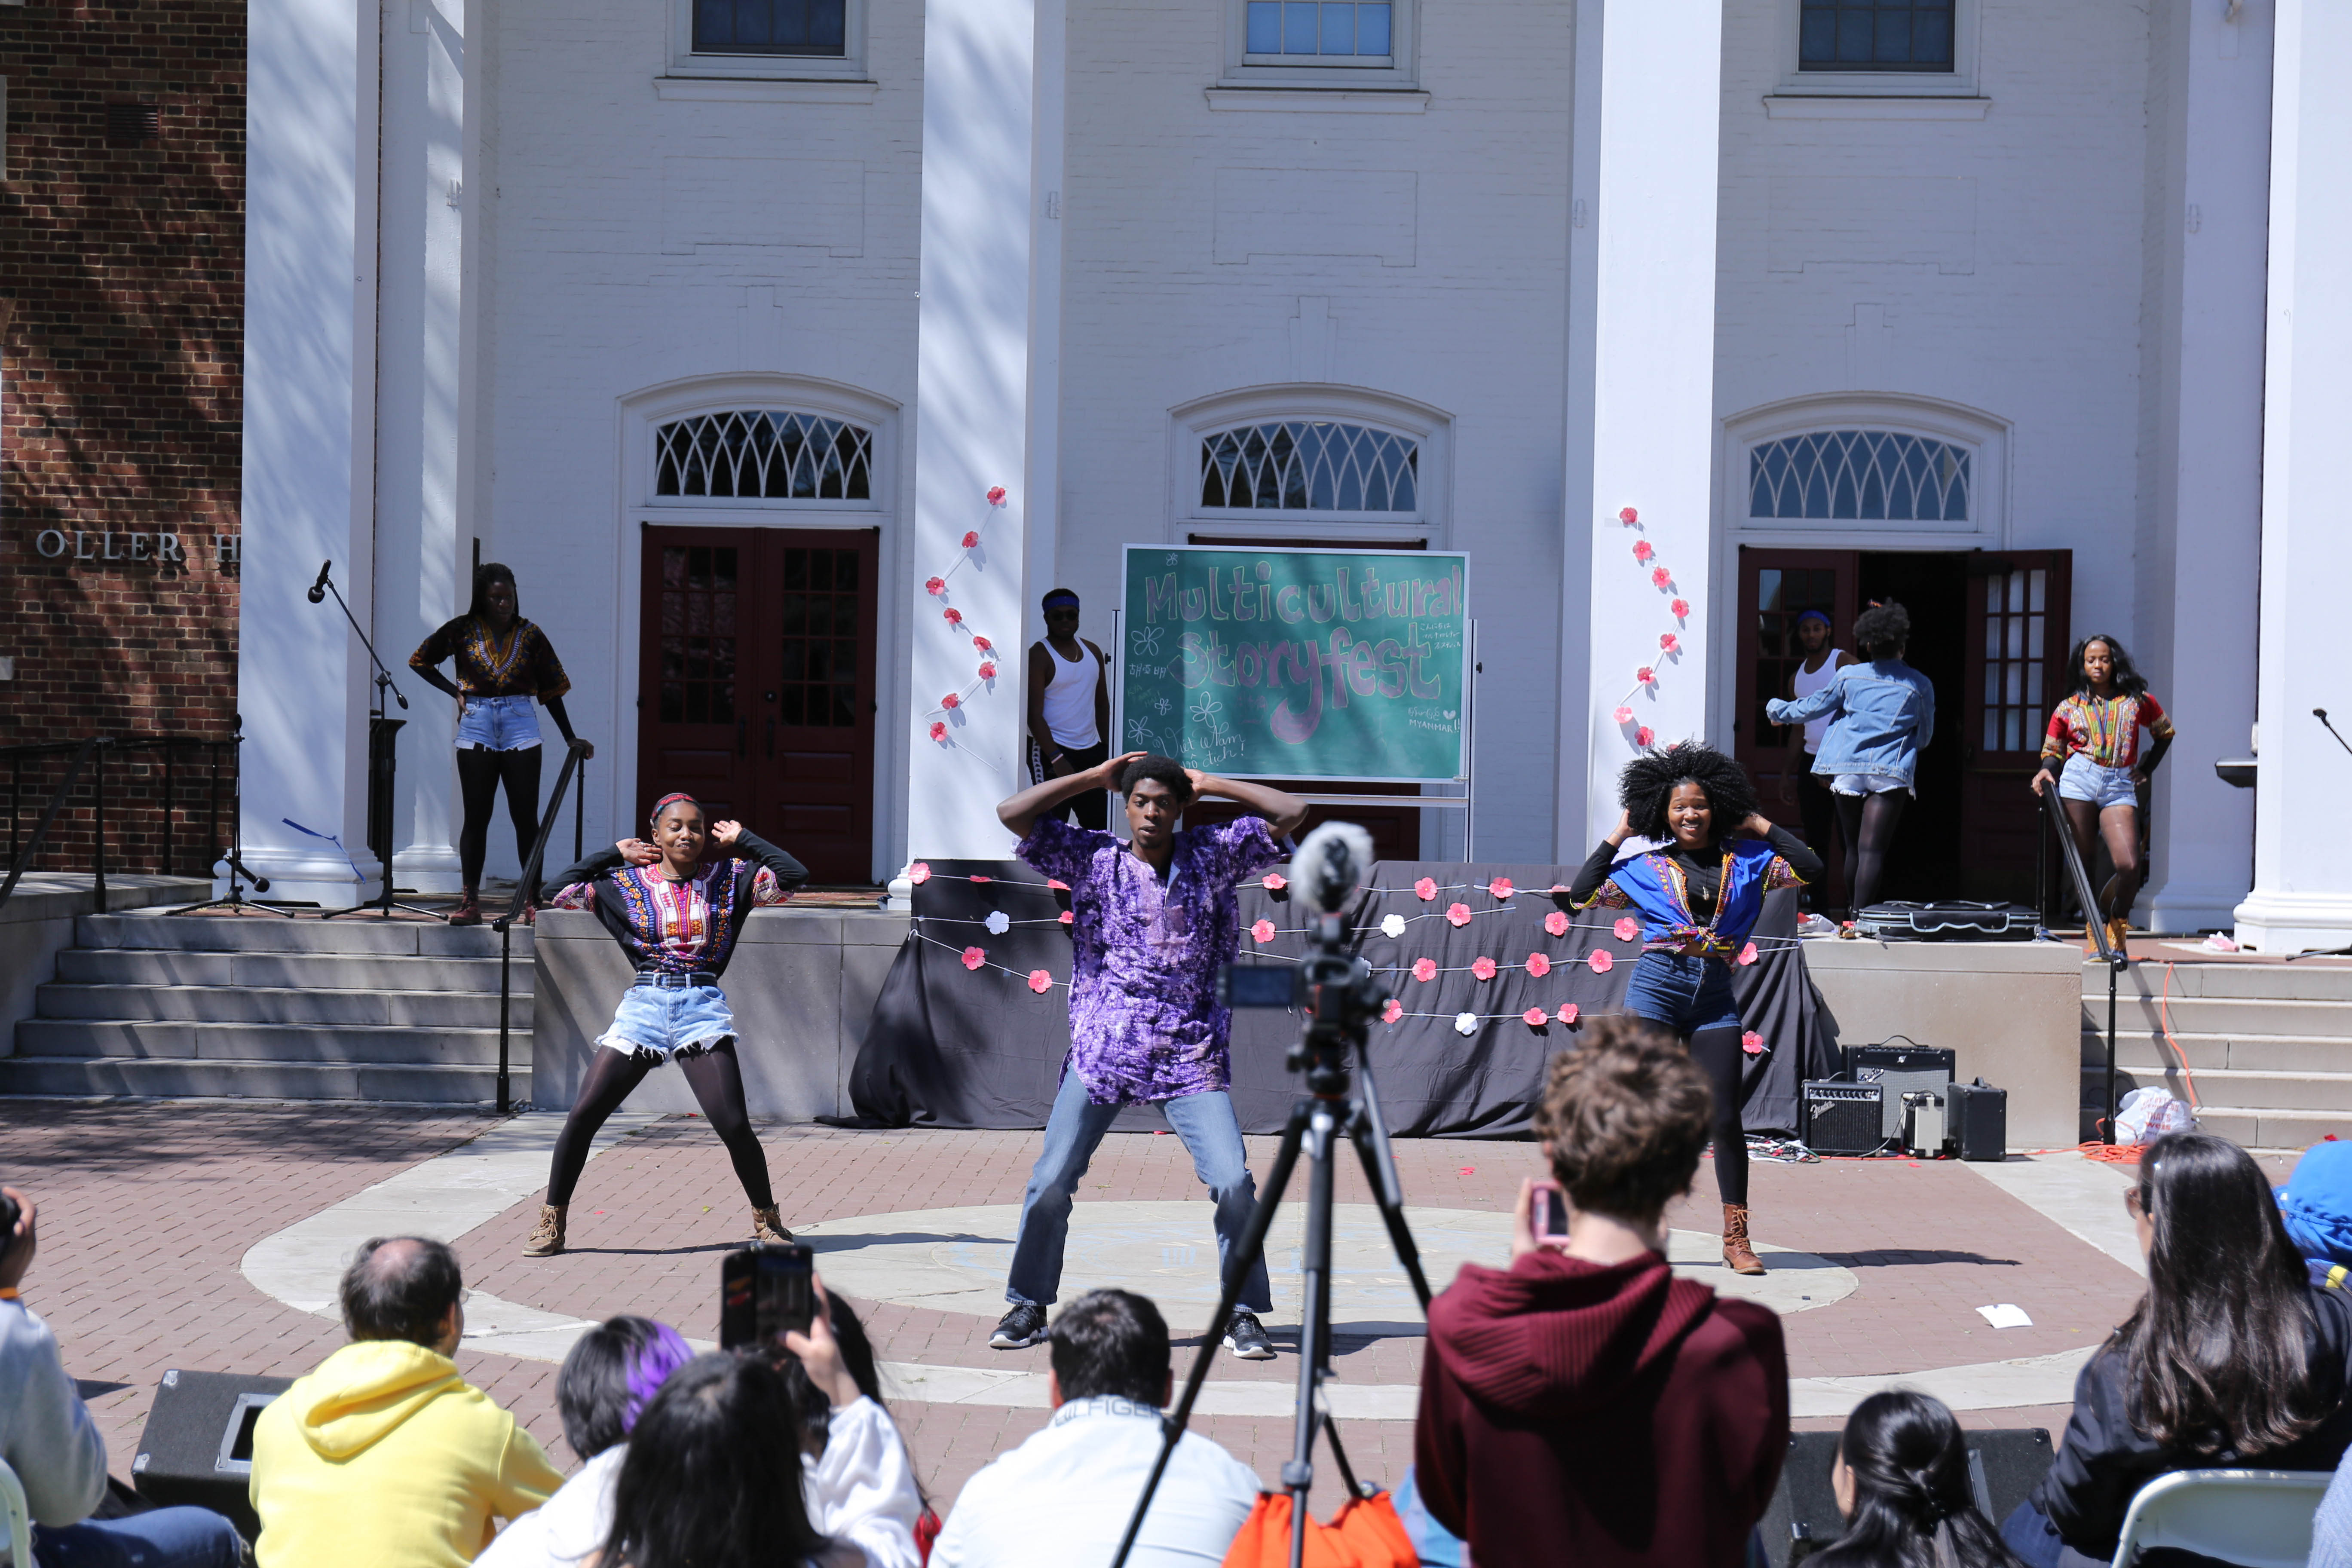 Multicultural Storyfest takes place annually at Juniata College.